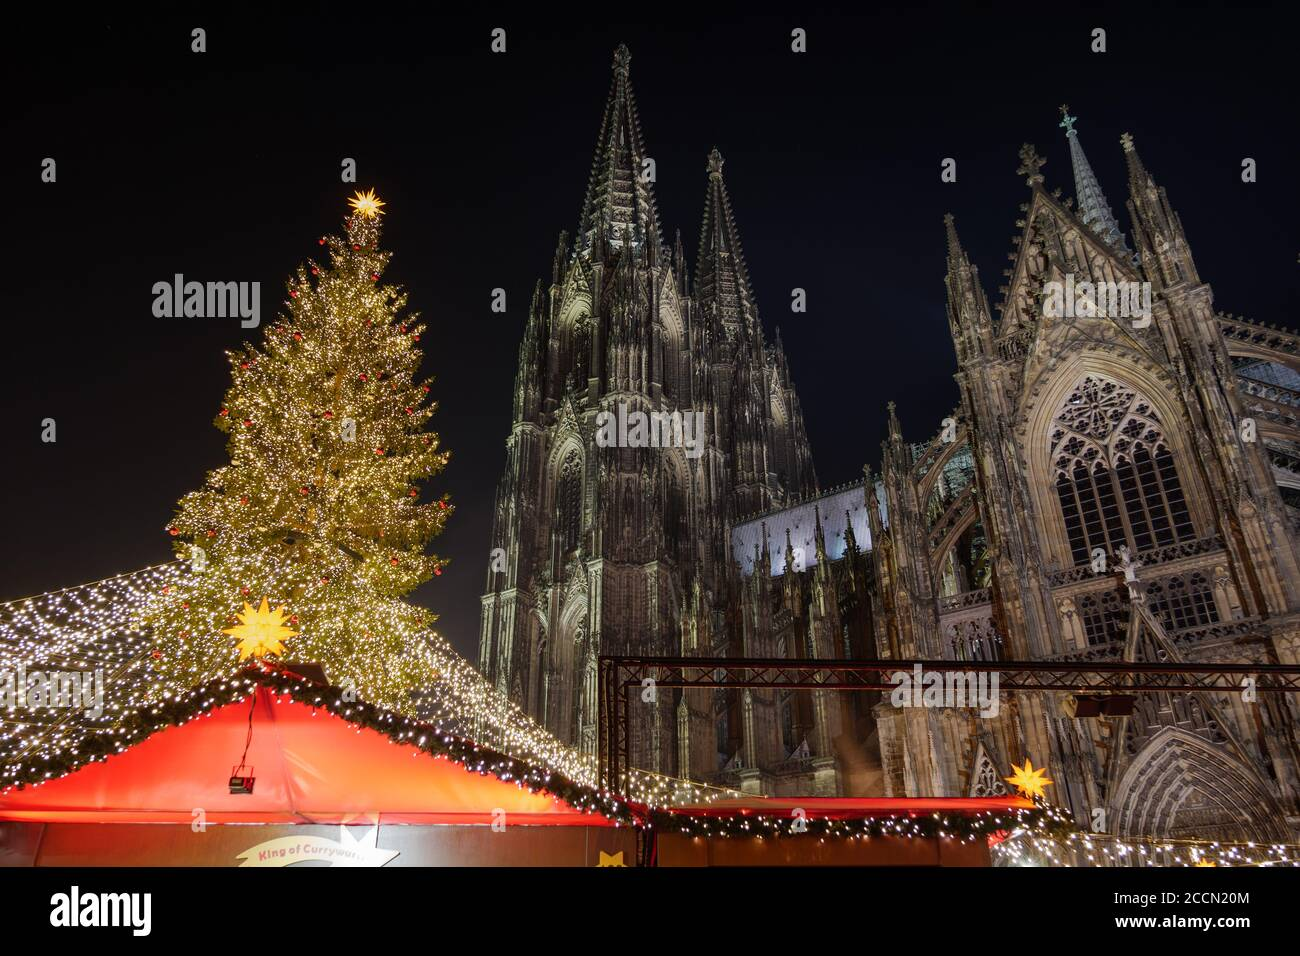 Night Scenery And Low Angle View Of Huge Christmas Tree And Cologne Cathedral During Weihnachtsmarkt Christmas Market In Koln Germany Stock Photo Alamy